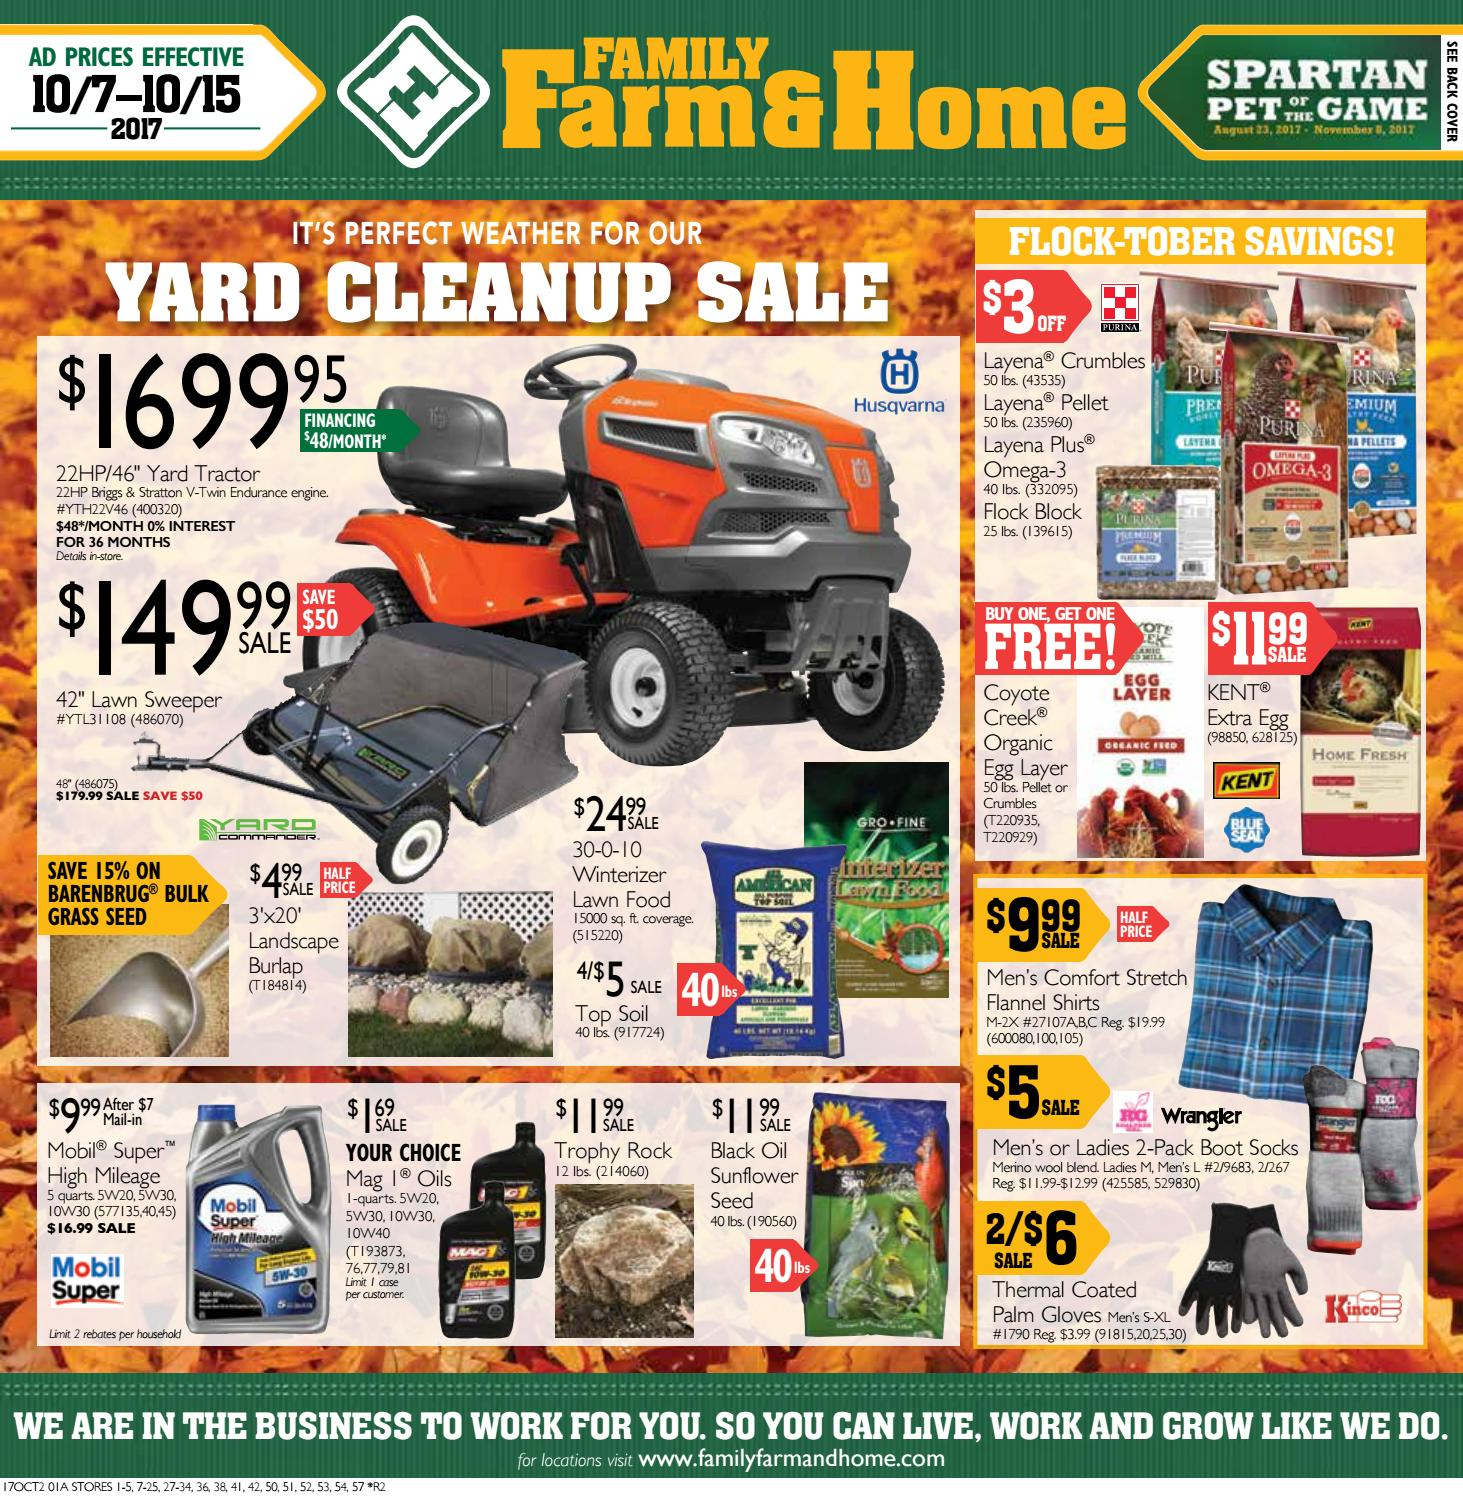 Family Farm & Home OCT2 Ad (Effective October 7-15, 2017) by